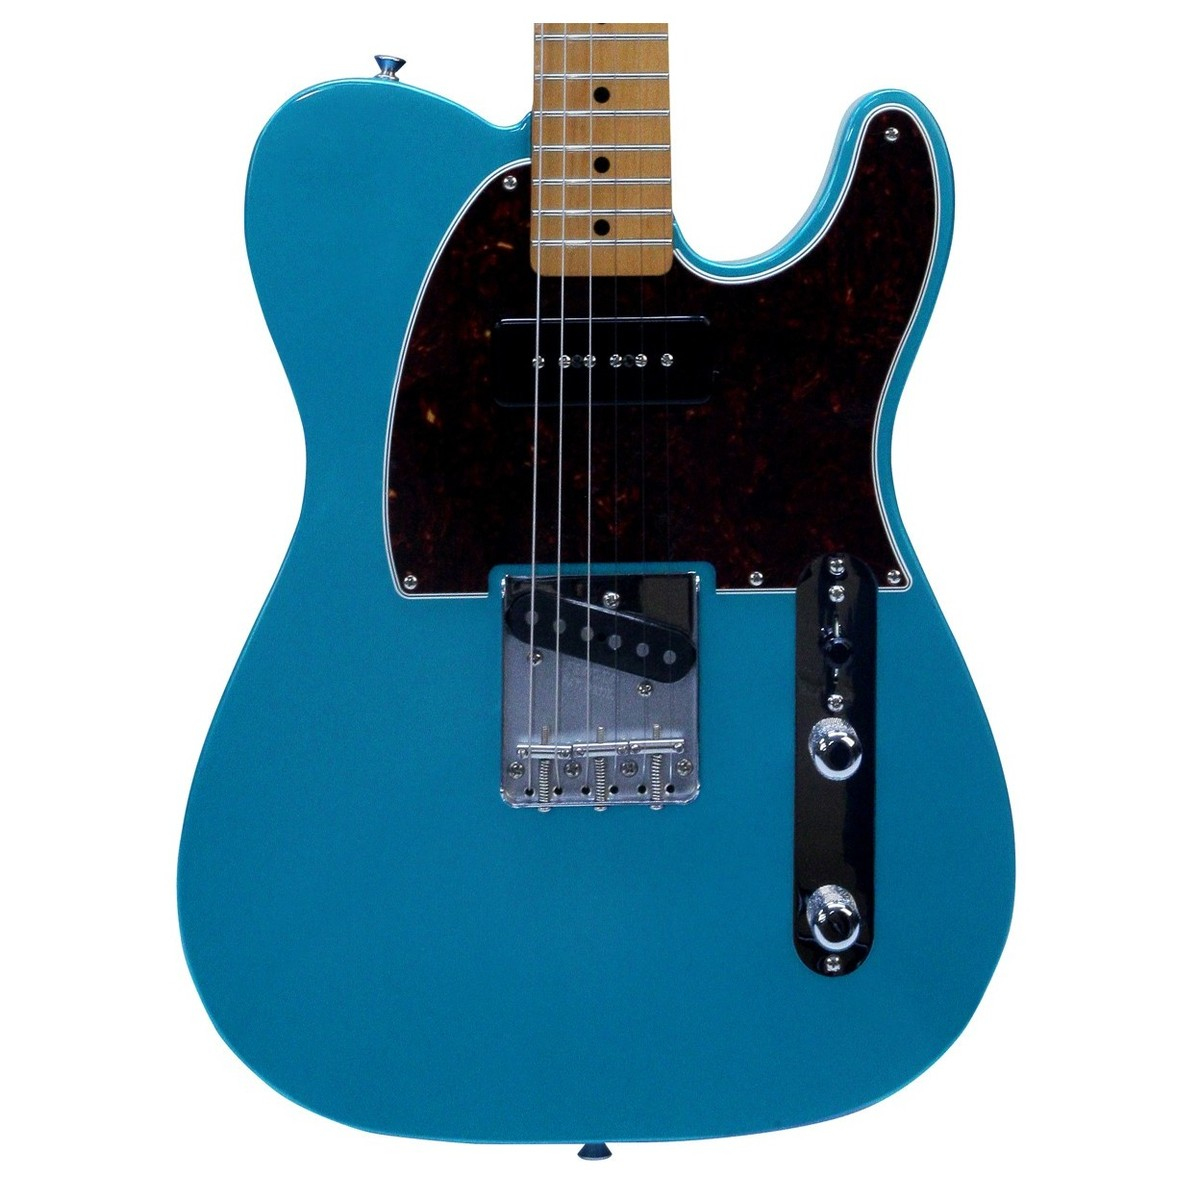 Disc Fender Fsr 50s Telecaster Mn Lake Placid Blue At Gear4music Style Wiring Solution For A 2 Humbucker Tele Limited Edition Loading Zoom